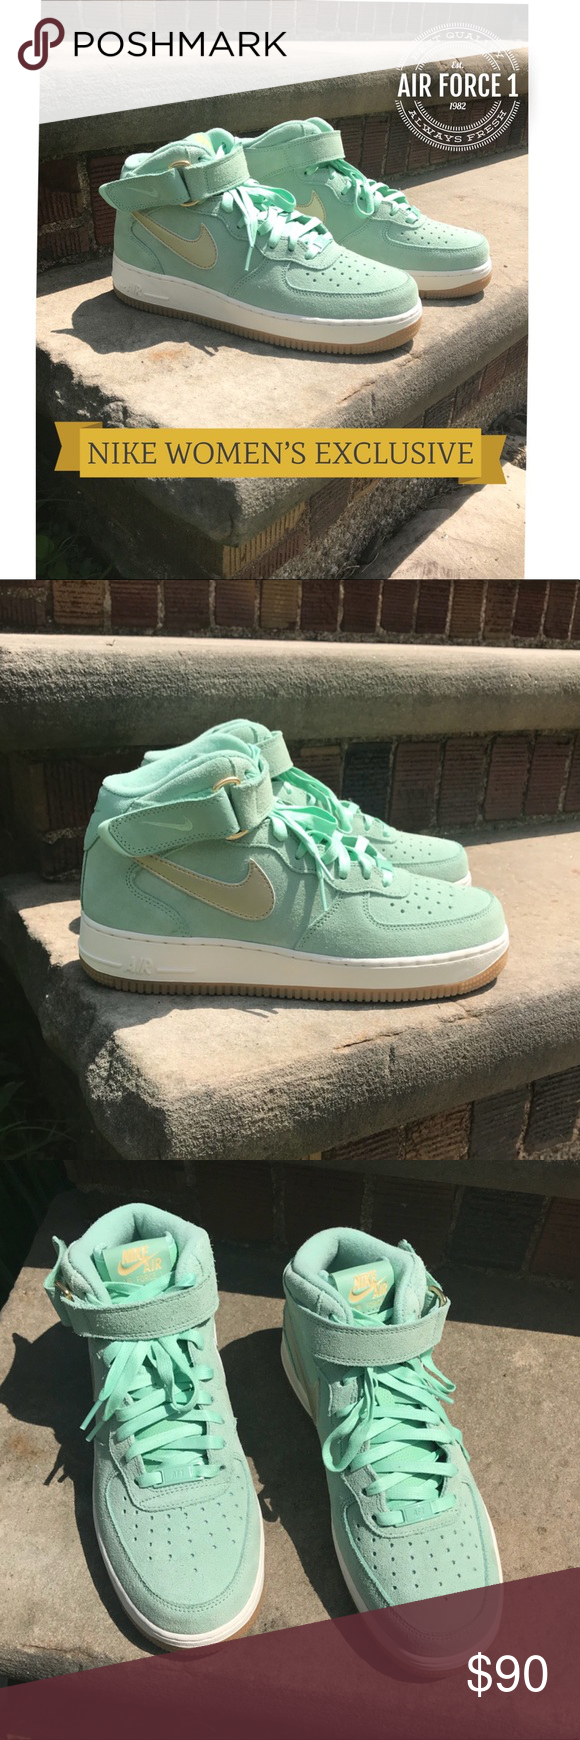 factory price 114fd 0ebf9 Spotted while shopping on Poshmark  New✨Nike Air Force 1 Mid Women s Enamel  Green Gold!  poshmark  fashion  shopping  style  Nike  Shoes